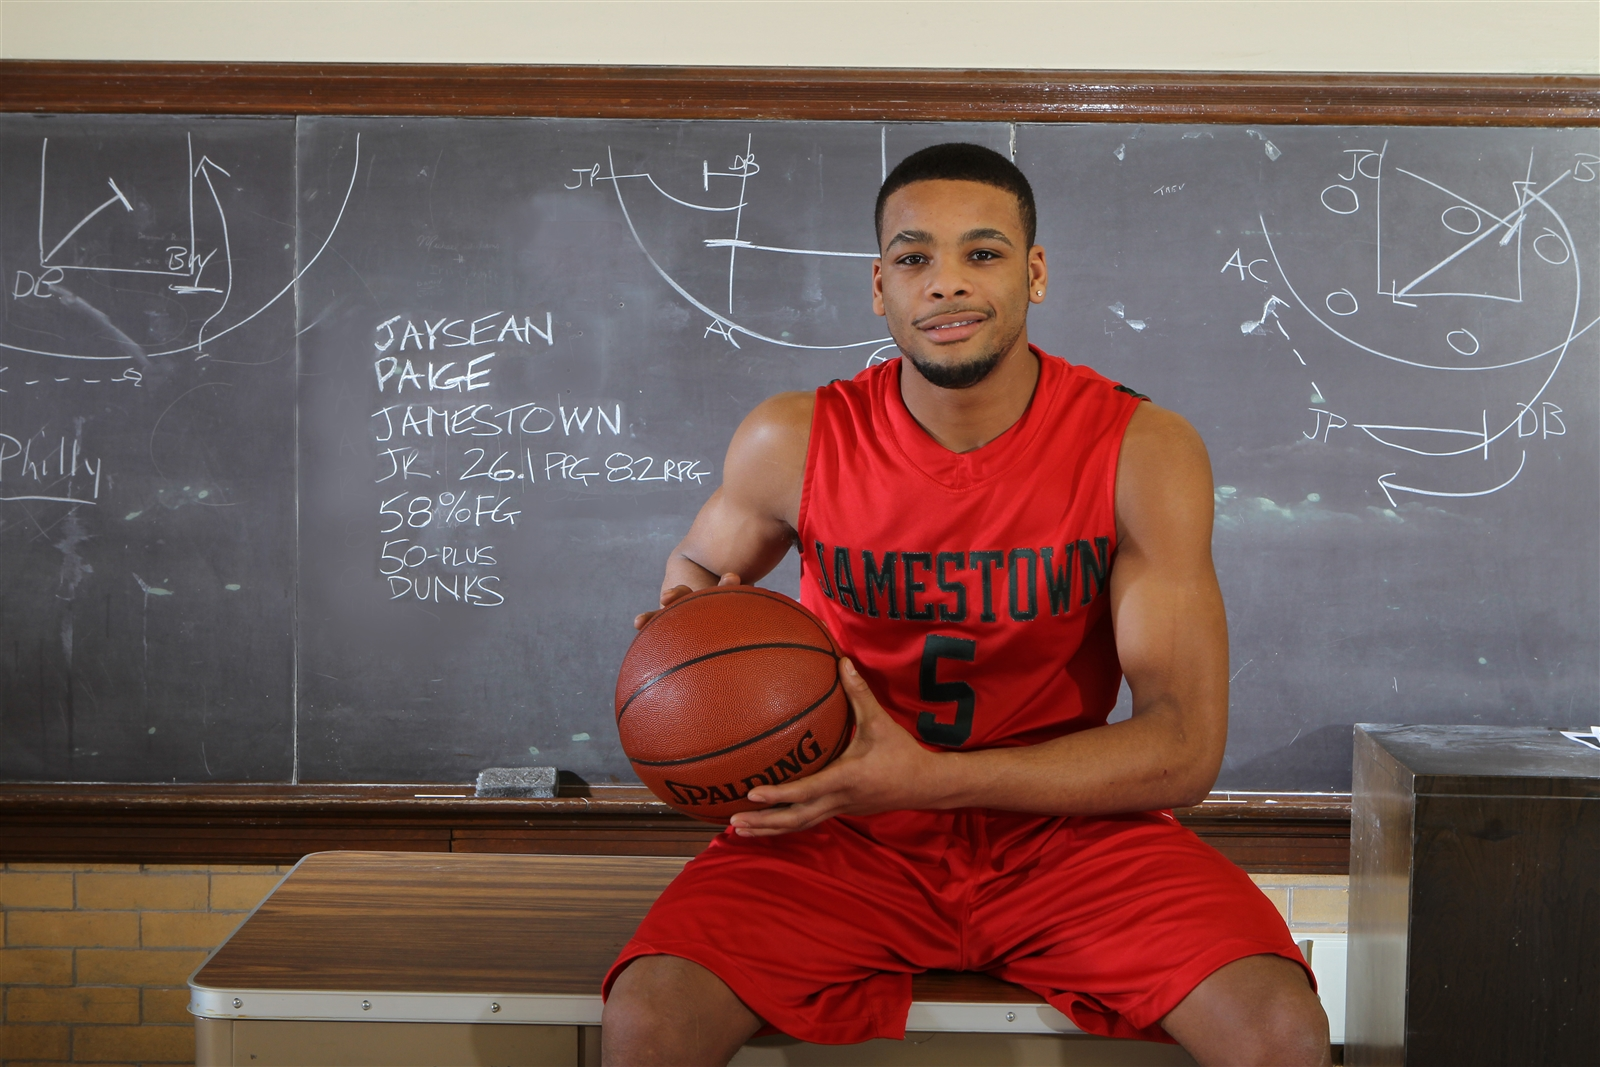 Jaysean Paige earned All-Western New York first team honors during the 2010-11 season with Jamestown. (James P. McCoy/Buffalo News file photo)